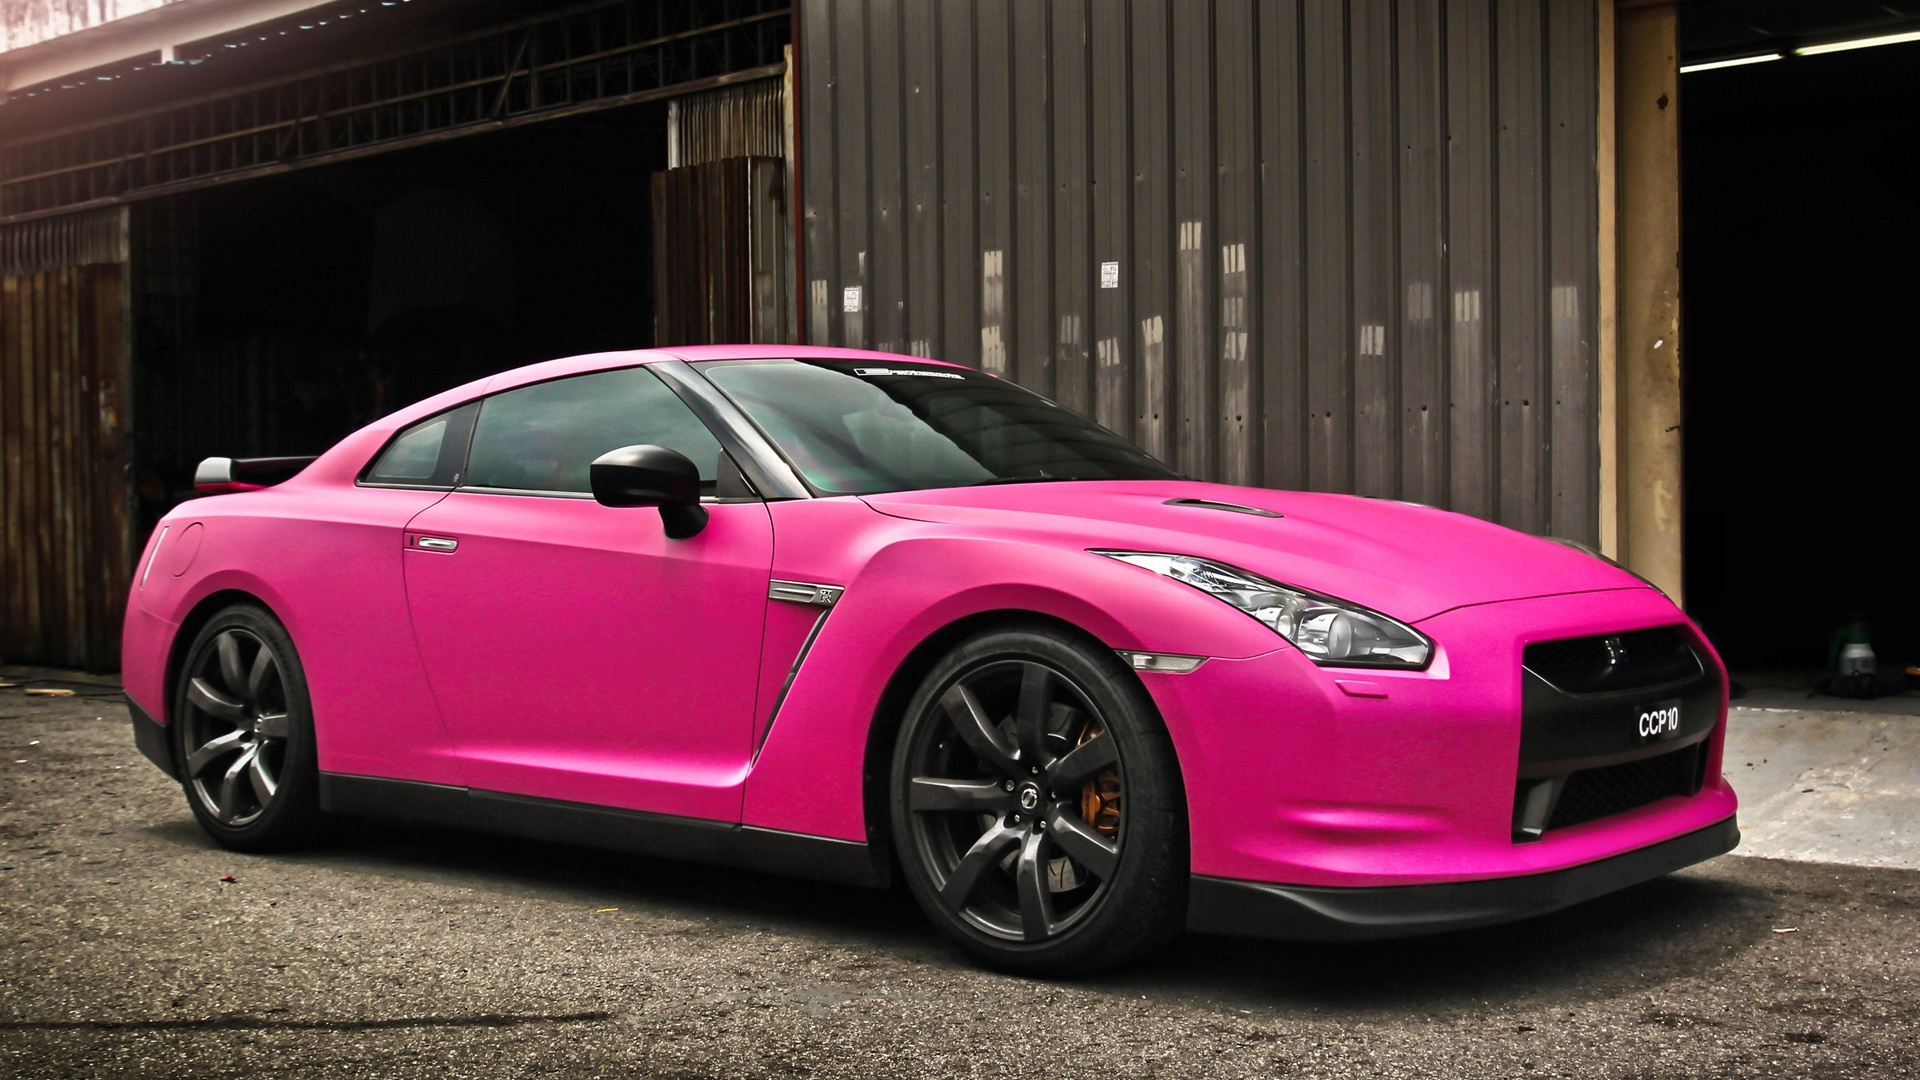 awesome pink car wallpaper 35176